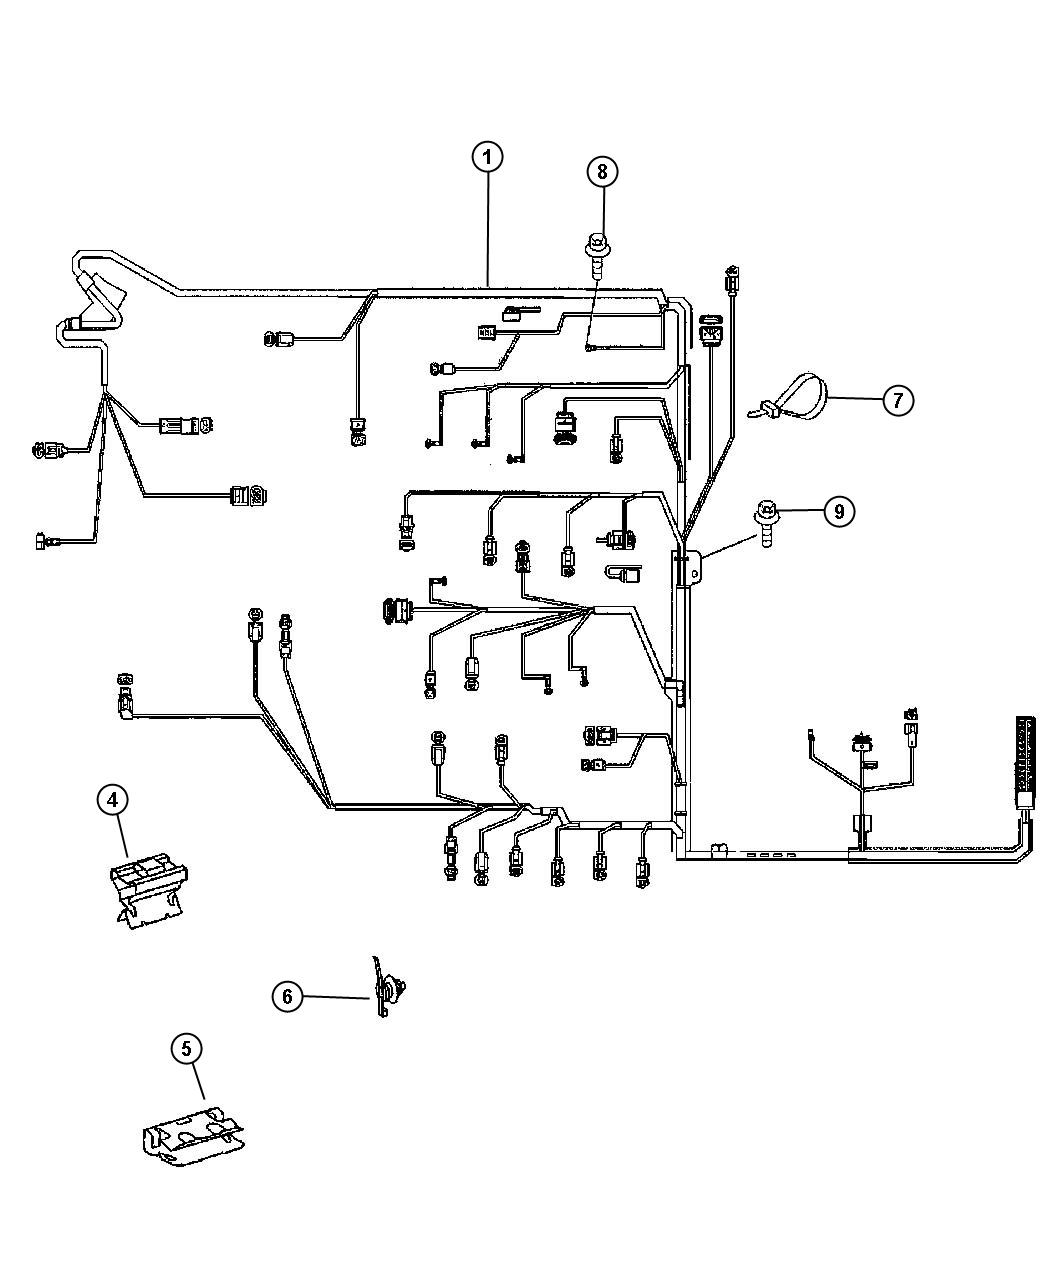 Dodge Sprinter Radio Wiring Diagram, Dodge, Free Engine